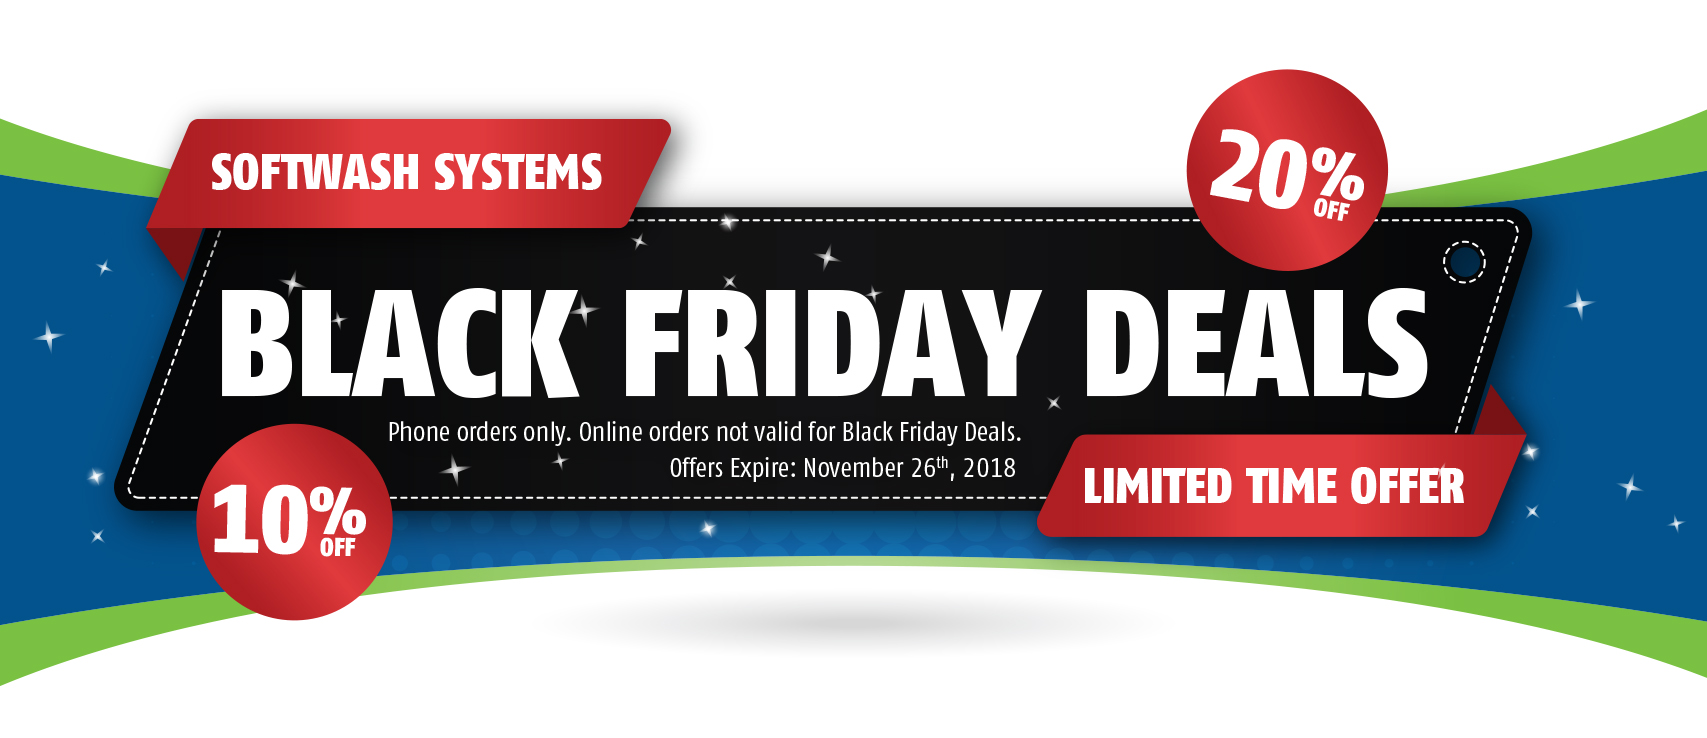 Black Friday Specials Black Friday Deals Softwash Systems